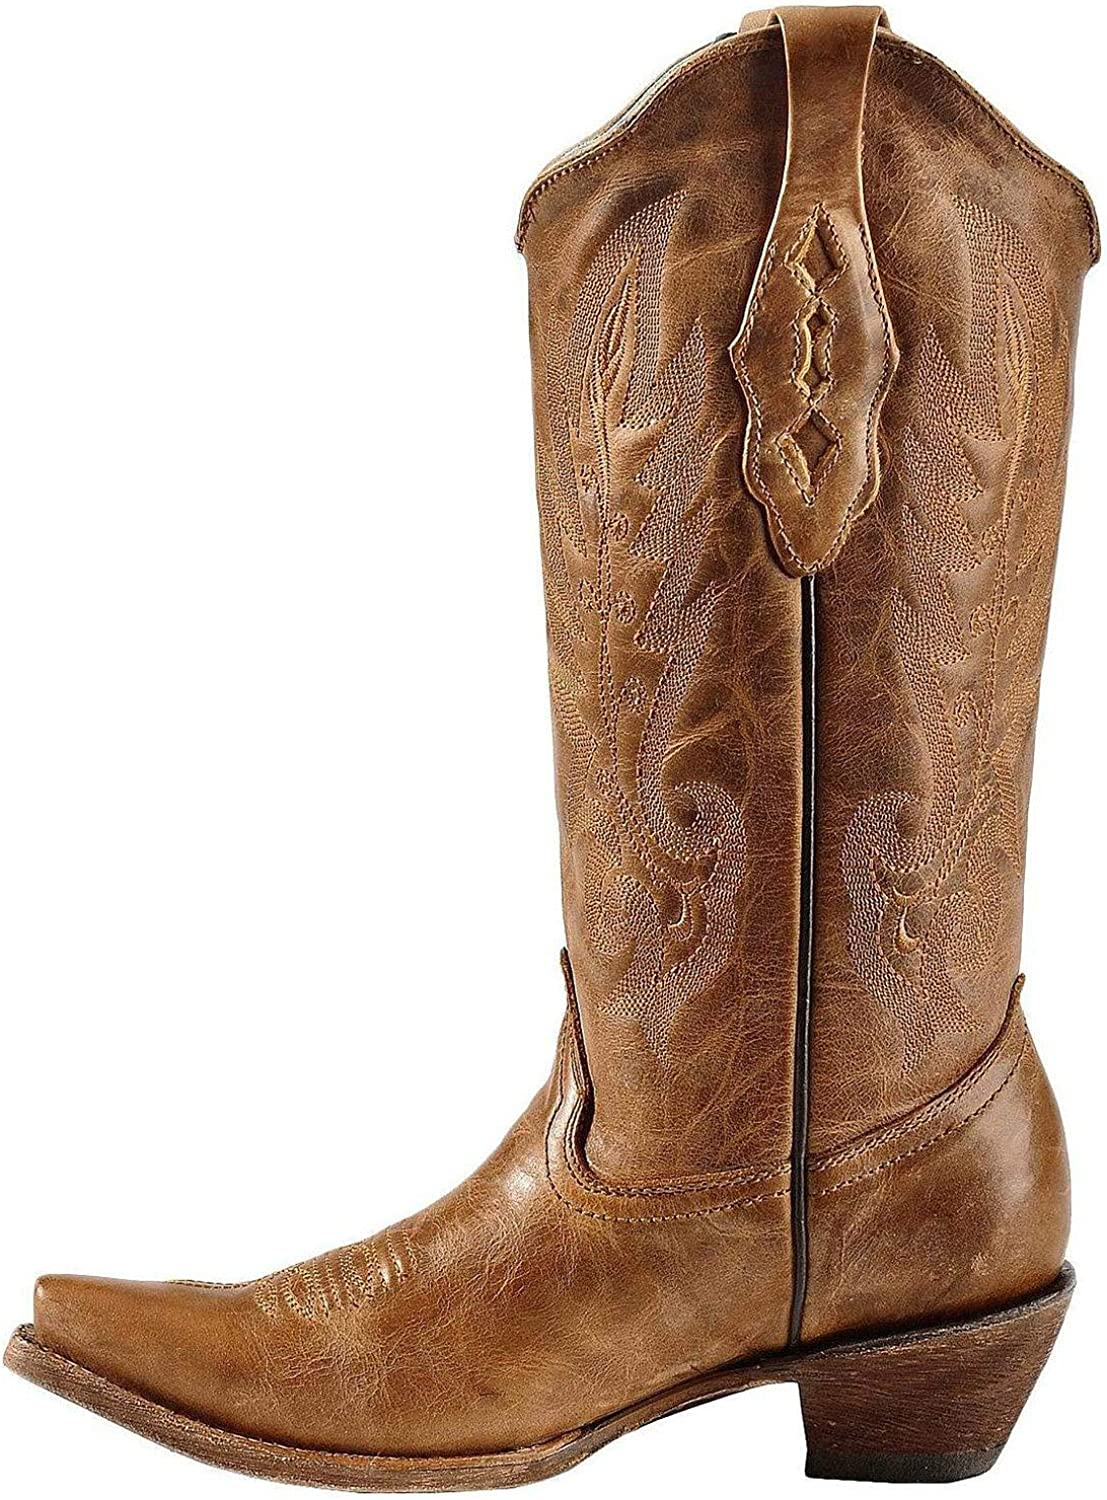 Corral Womens Vintage Leather Cowgirl Boot Snip Toe